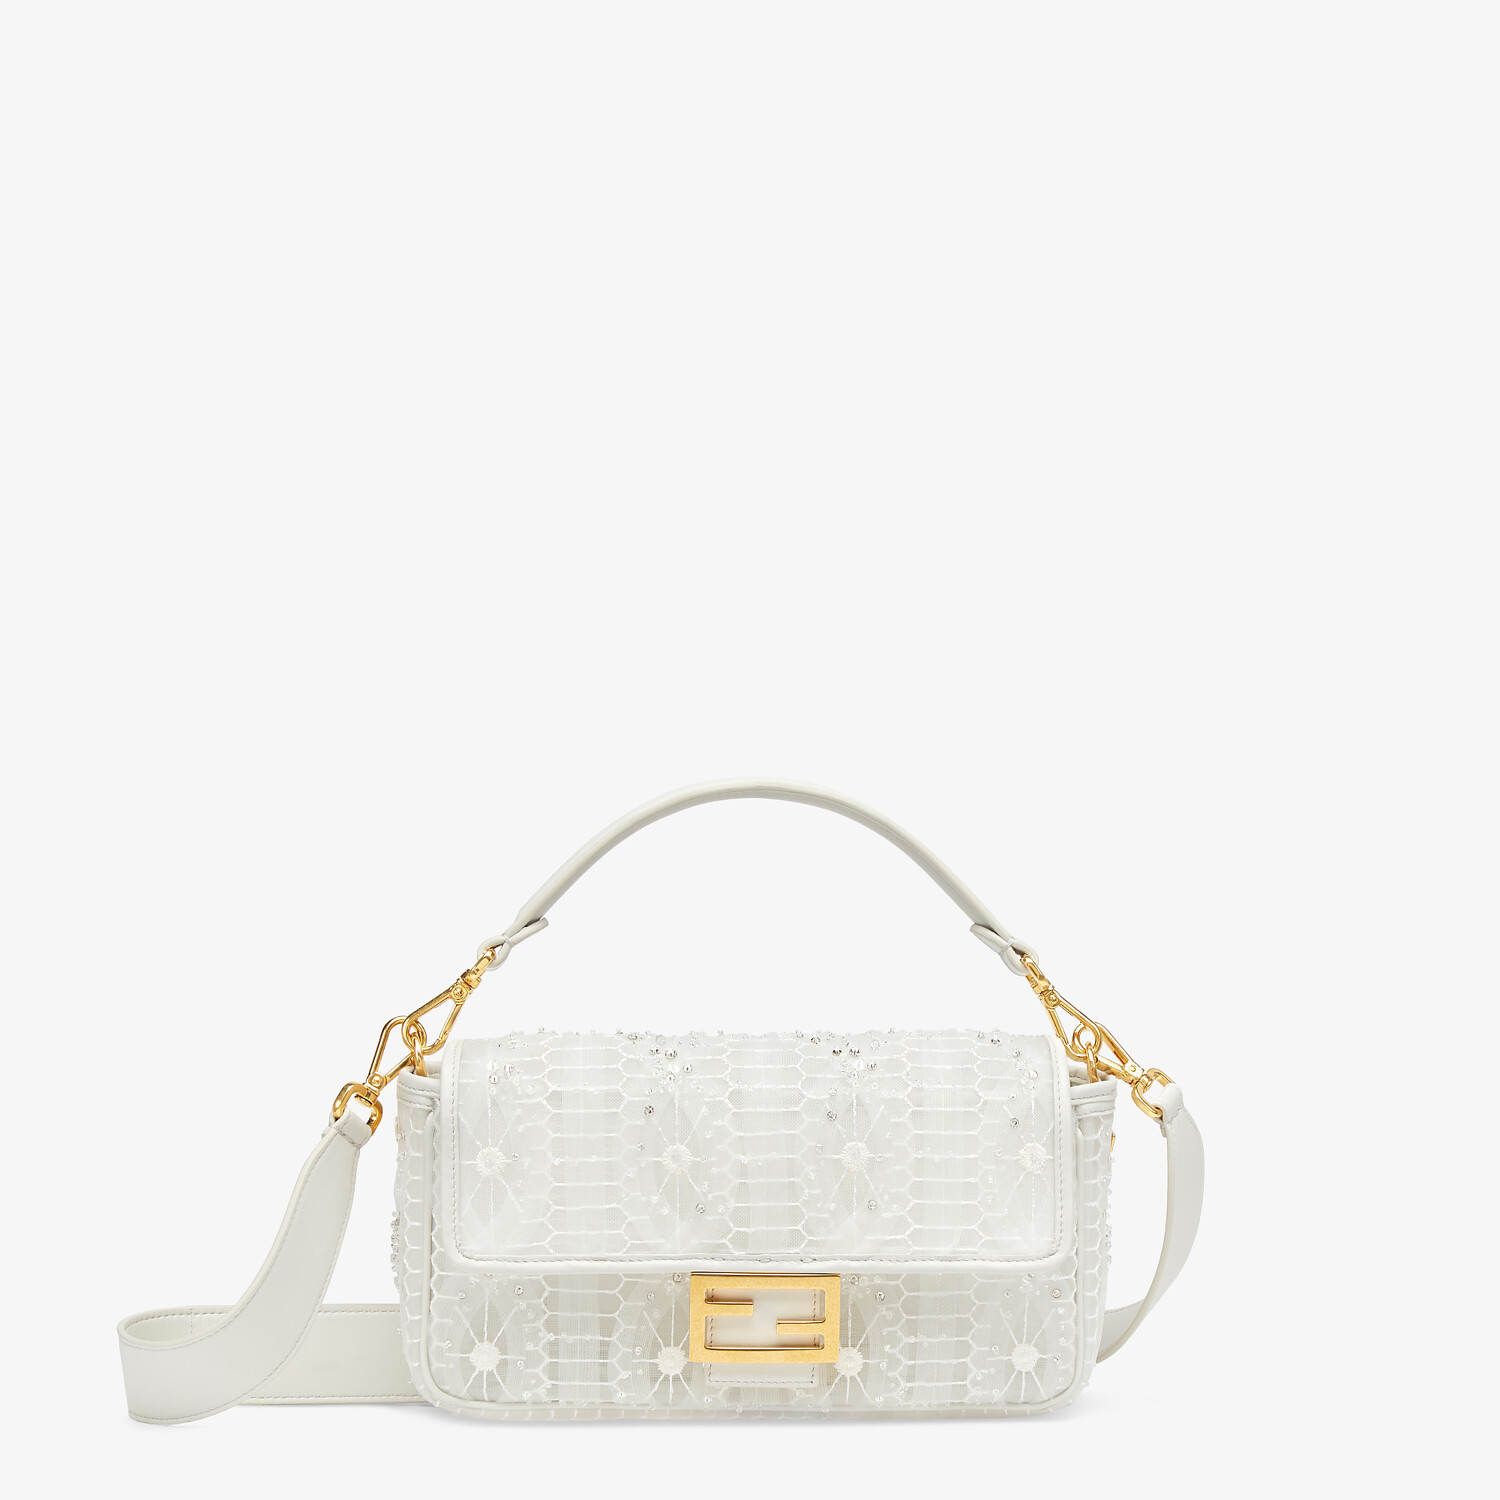 FENDI BAGUETTE - Embroidered white tulle bag - view 1 detail